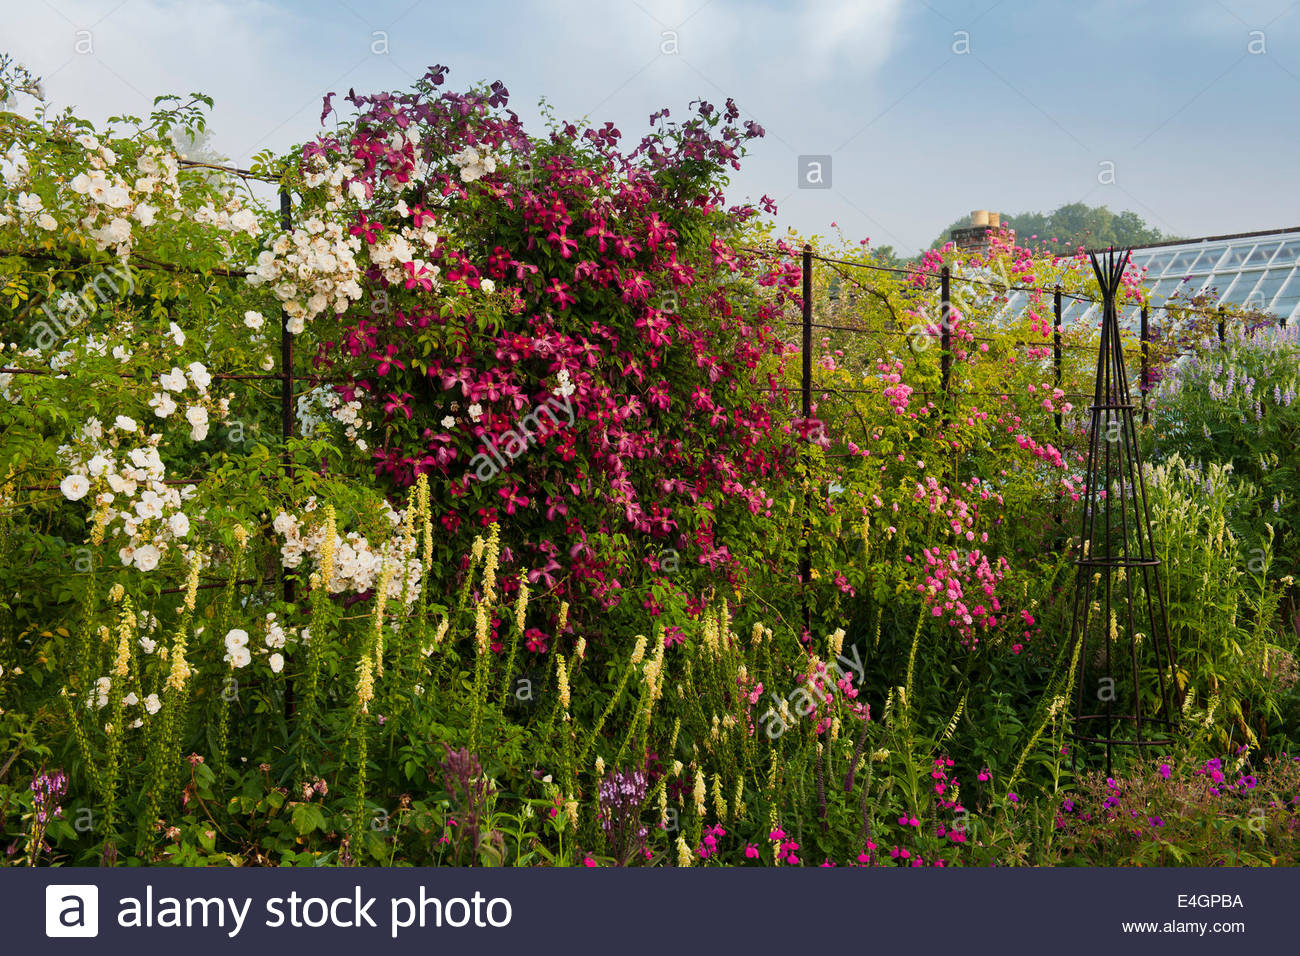 Flowers Fence Climbing Stock Photos Flowers Fence Climbing Stock